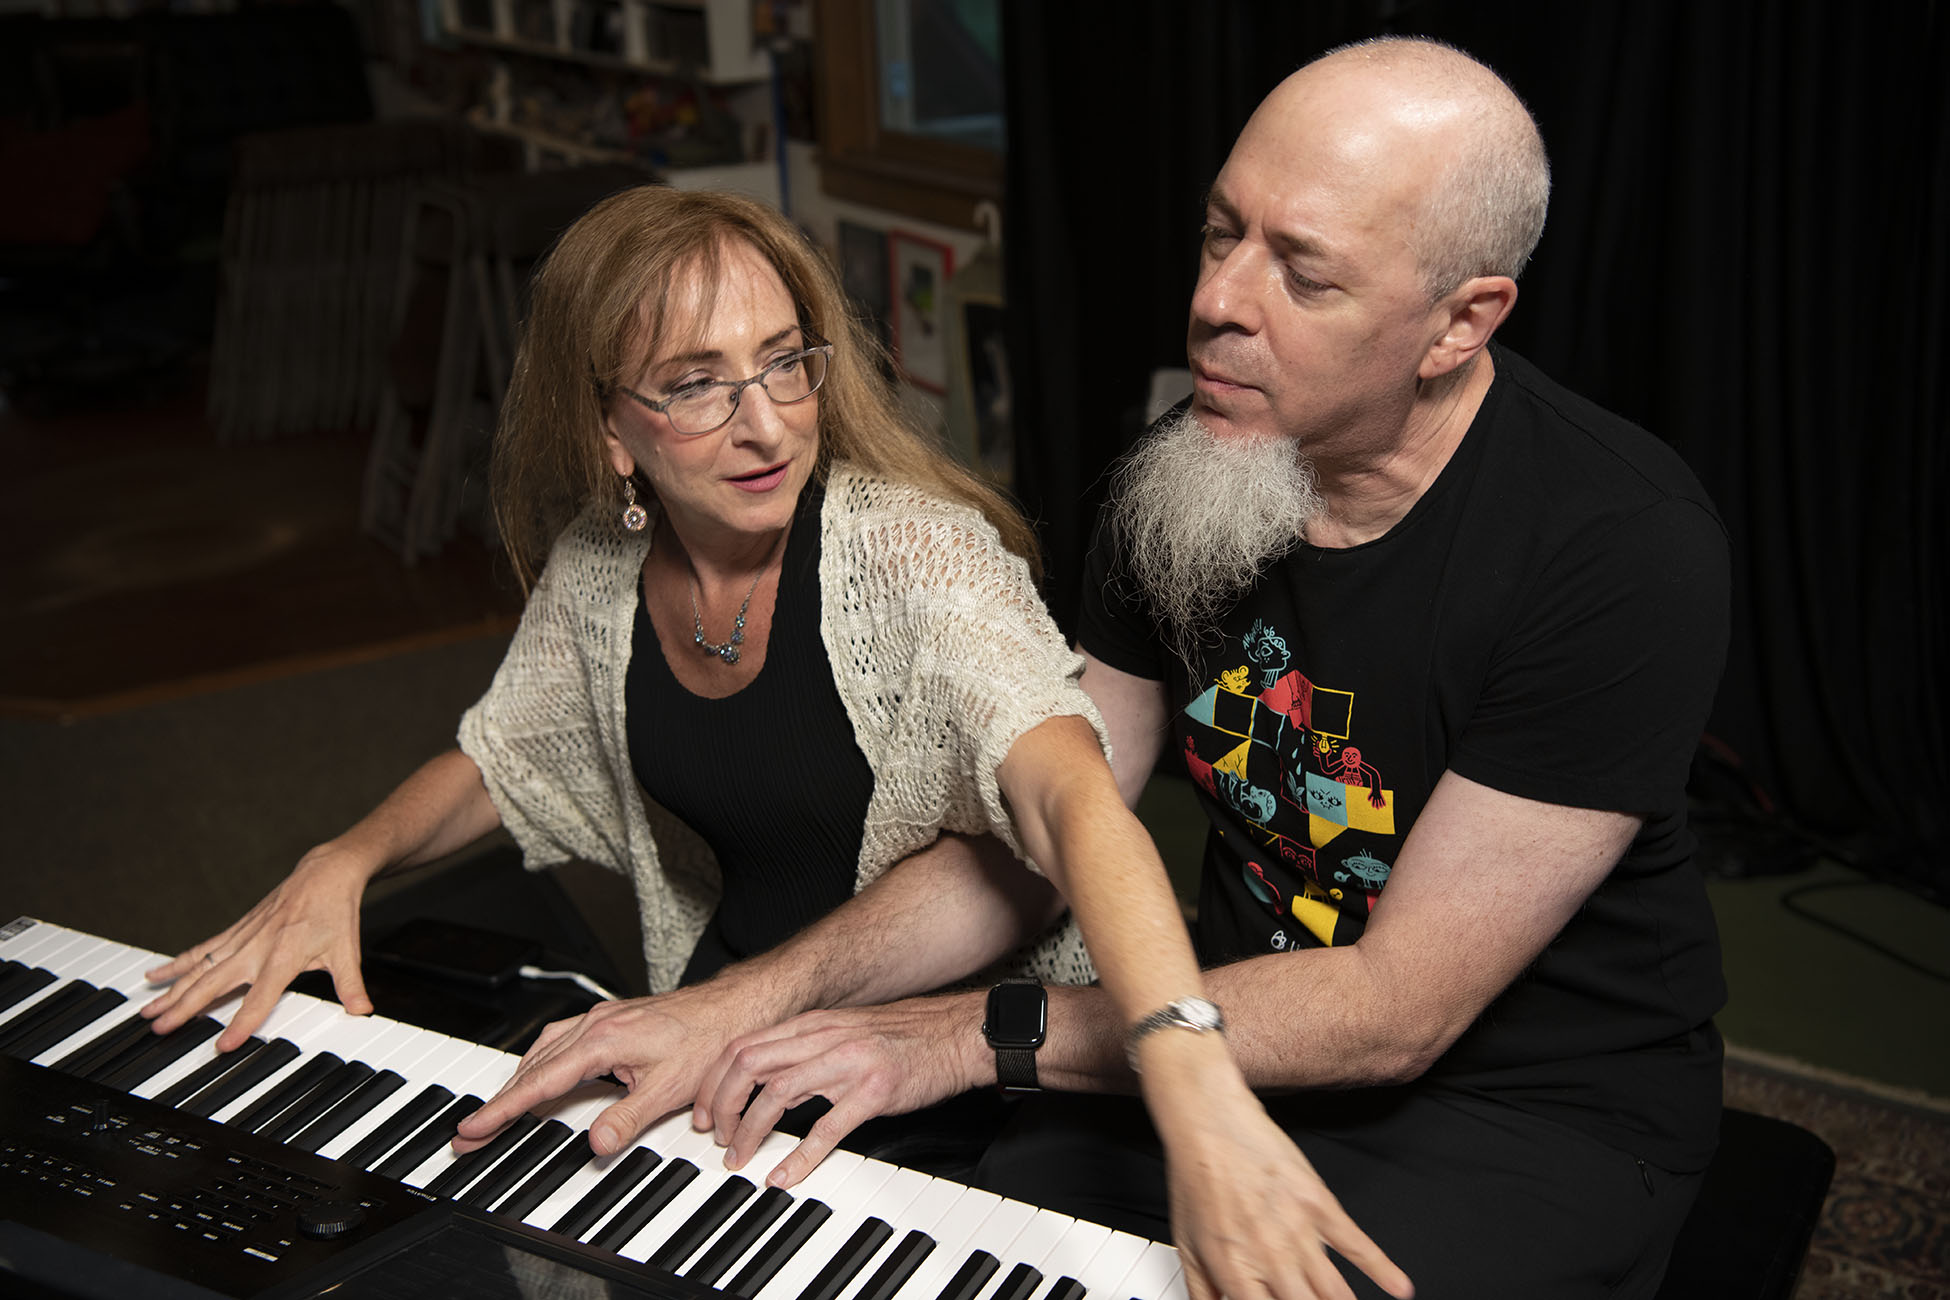 Jordan Rudess and Judith Stillman at the LoFaro Center of the Performing Arts, August 17, 2019